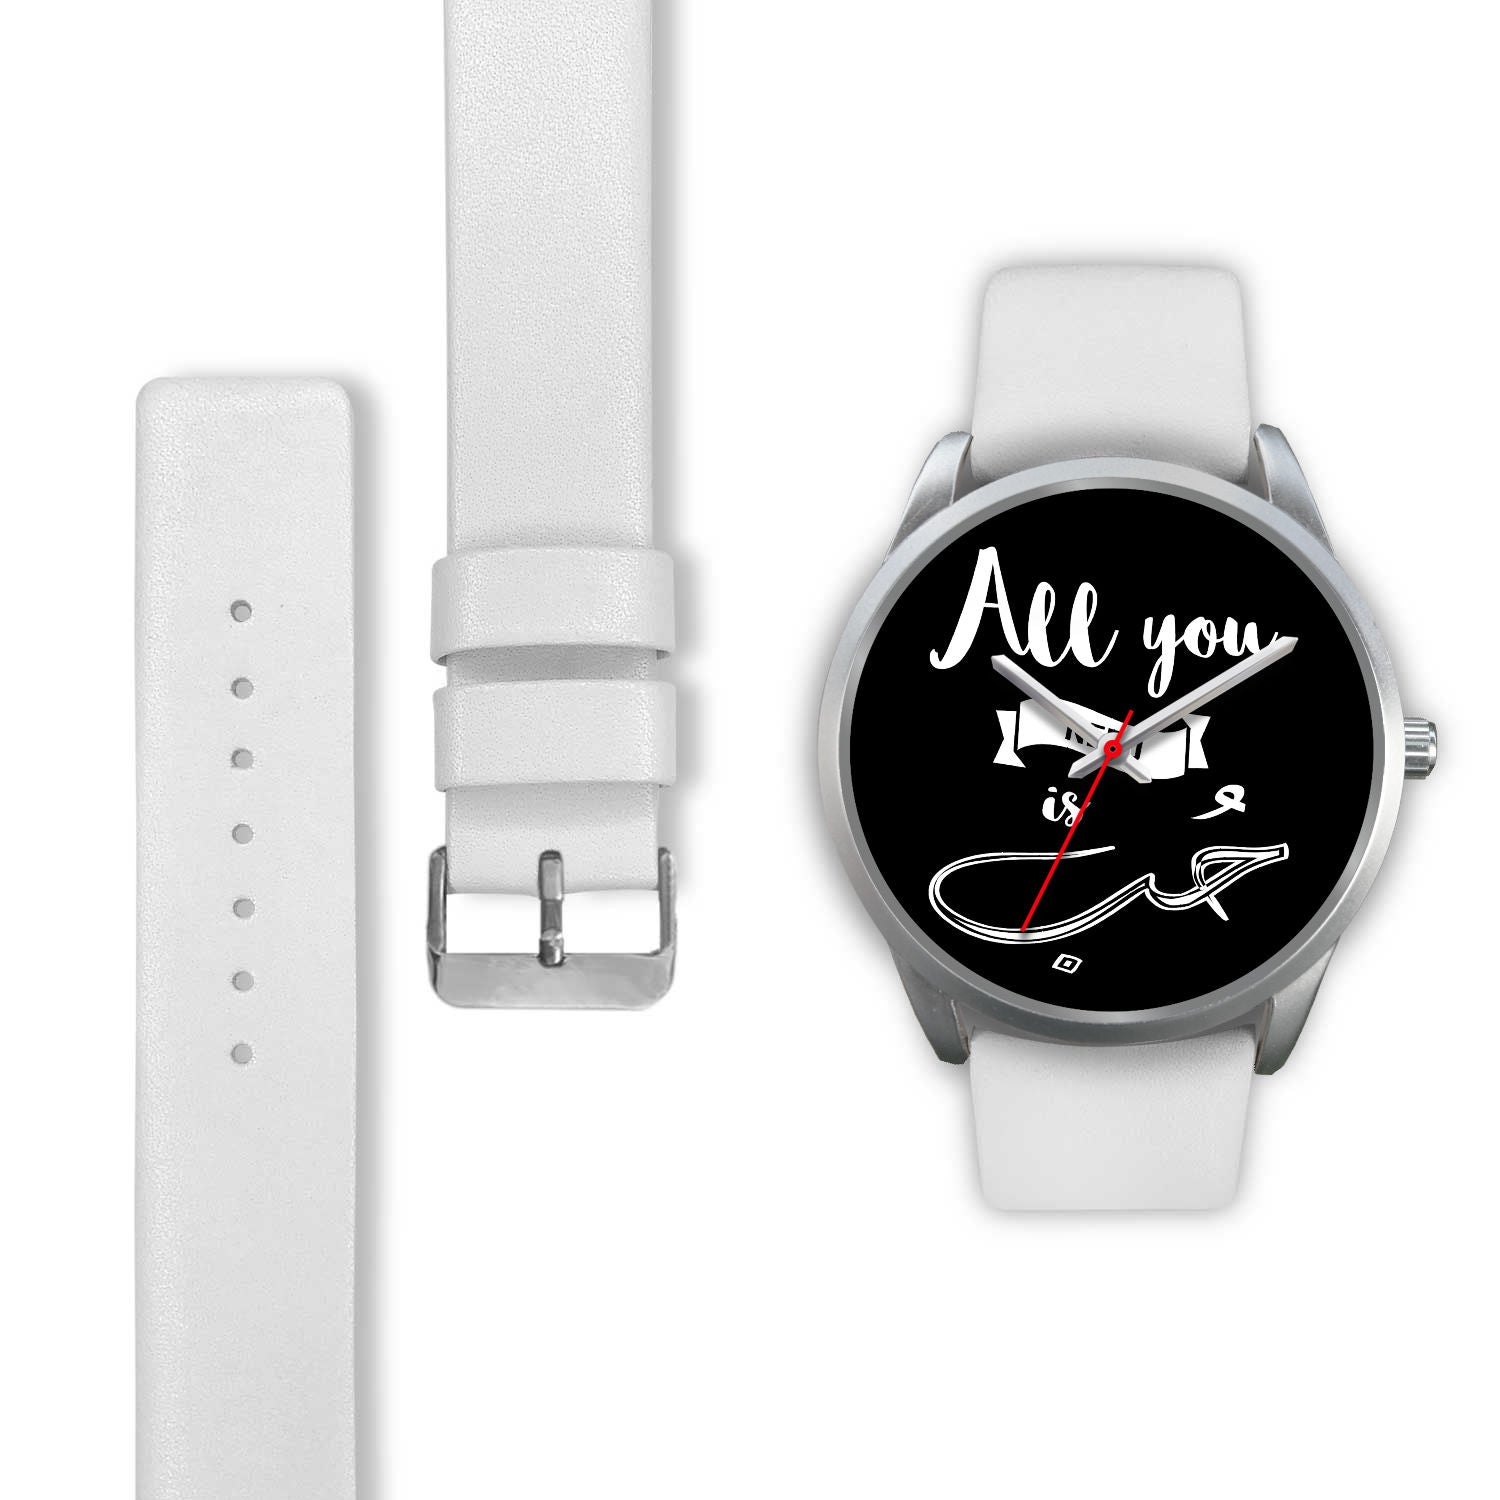 Silver Watch with White Band -All you need is love English